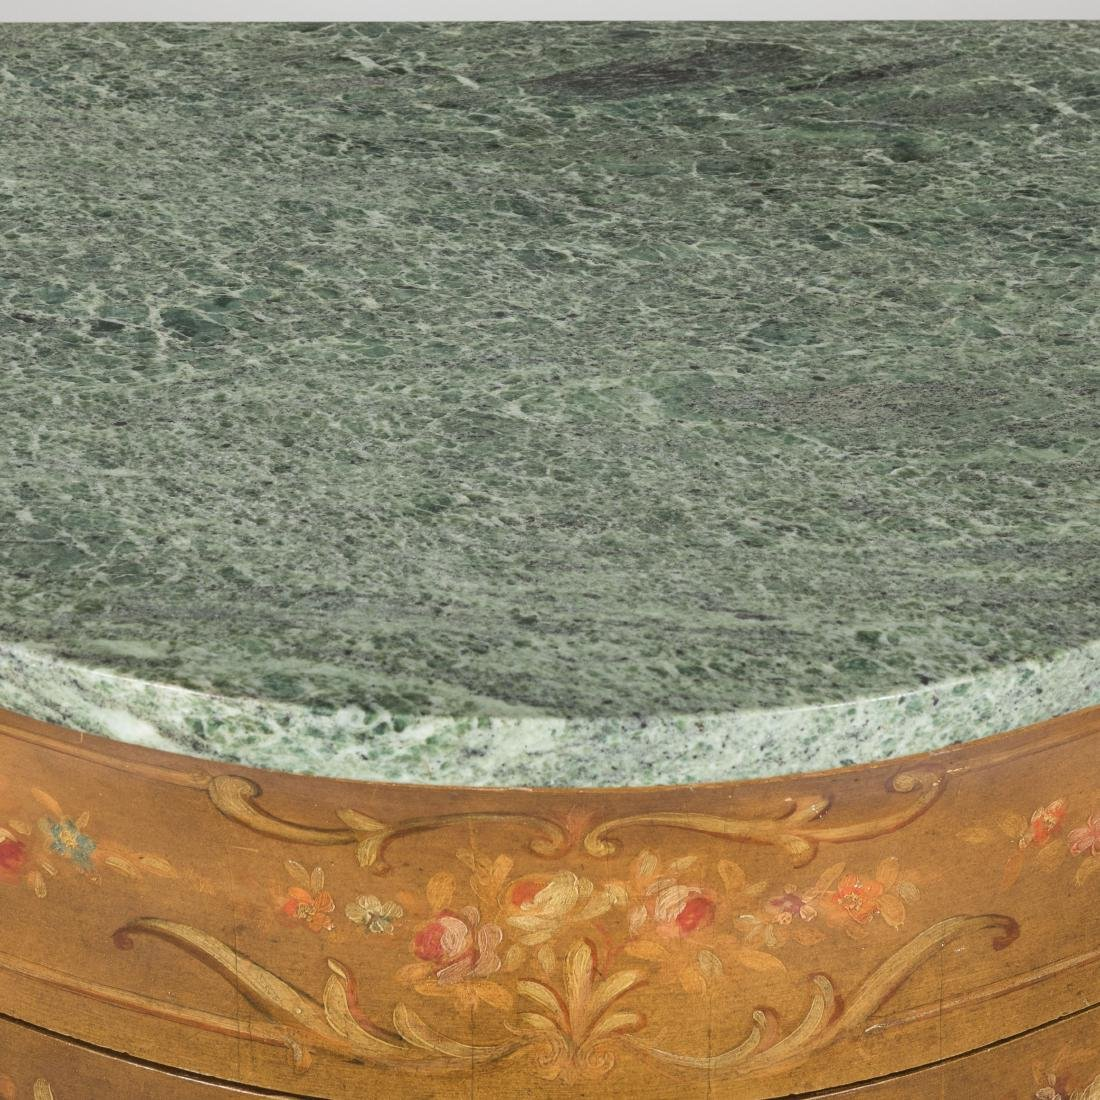 Painted Italian Marble Top Commode - 6